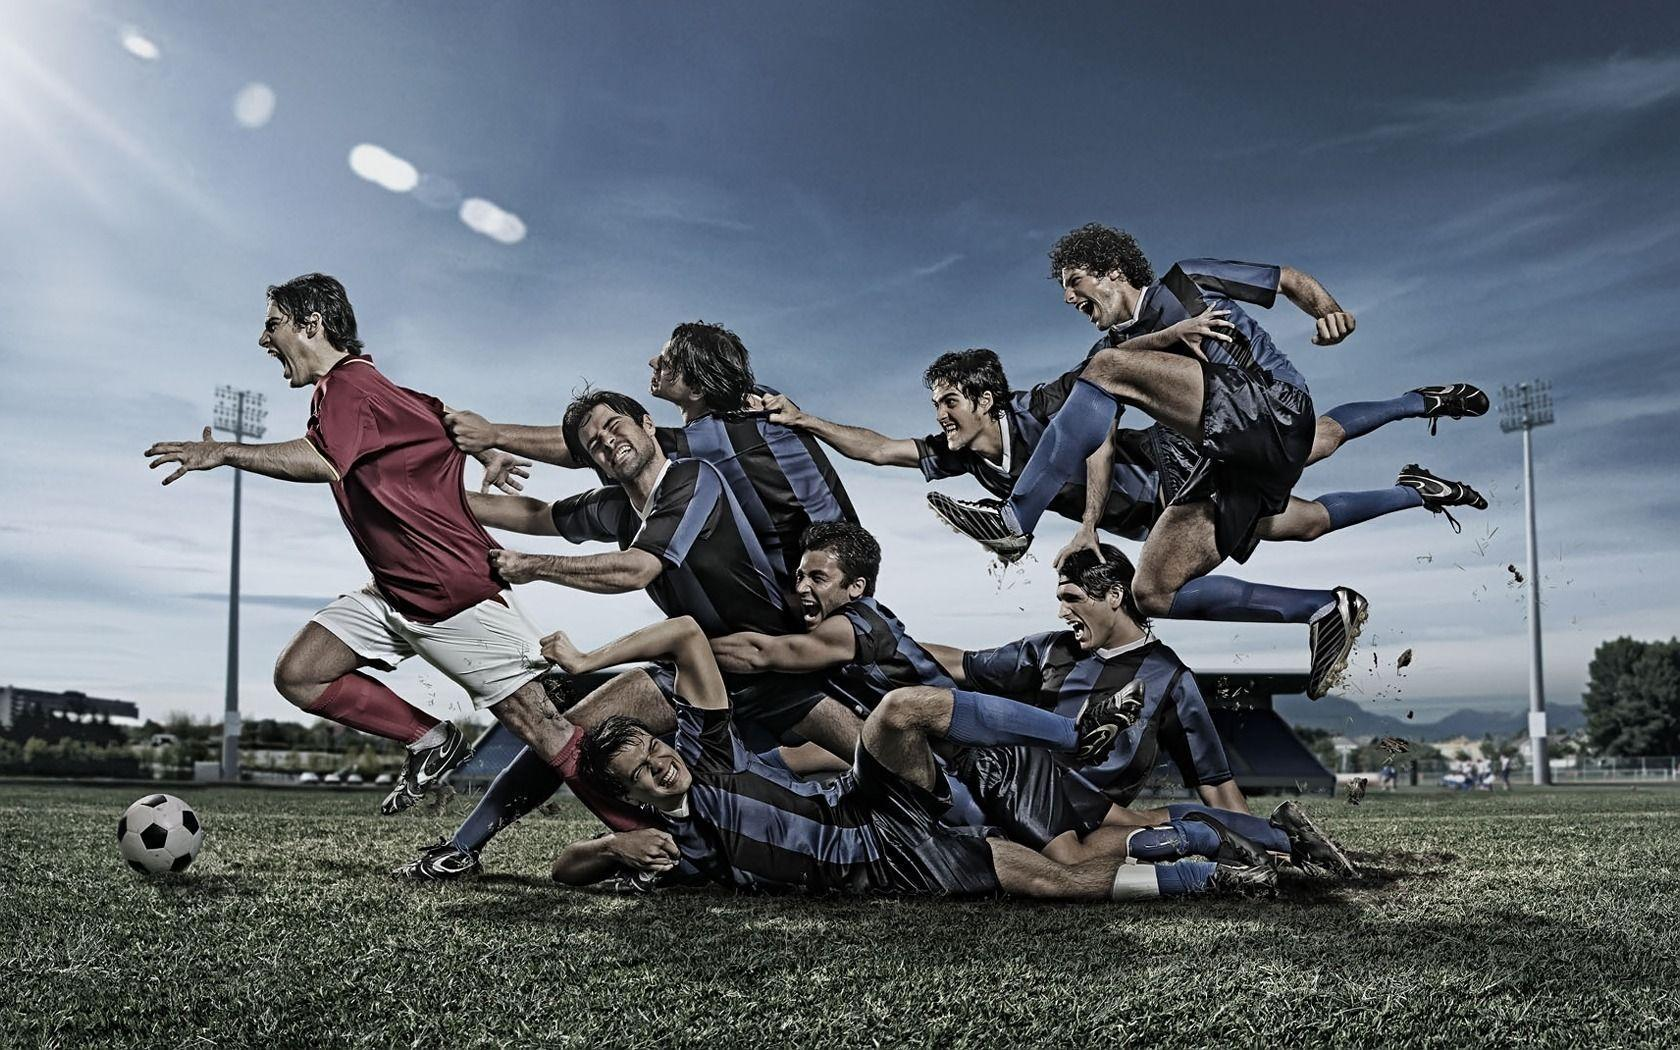 Unstoppable Wallpaper Football Sports Wallpapers in jpg format for ...